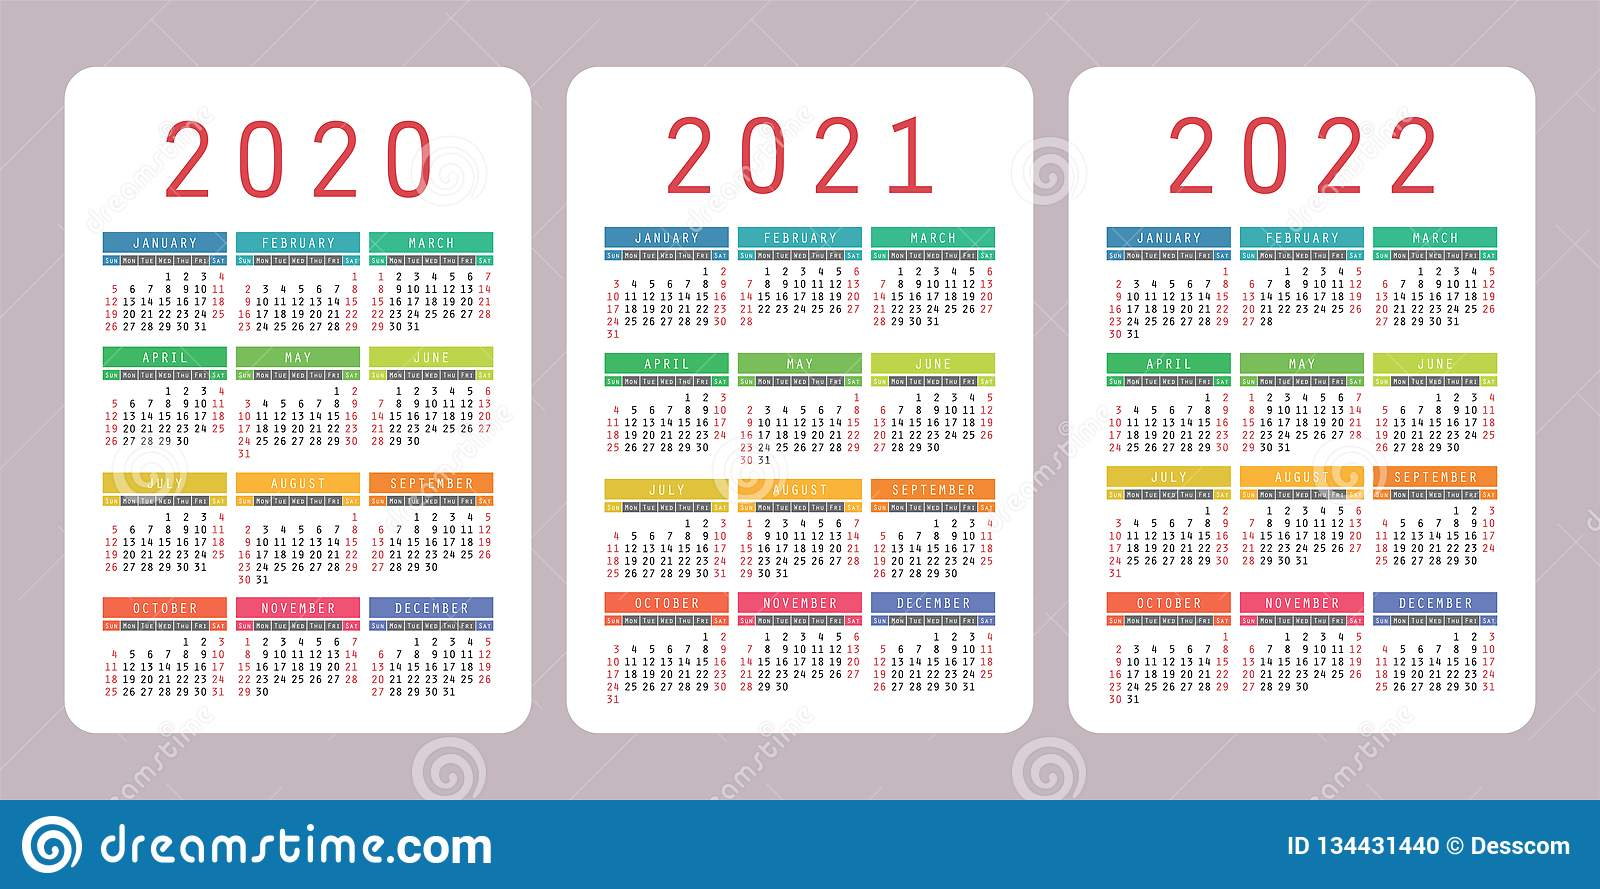 Calendrier 2020, 2021, 2022 Ans Calibre Vertical De Conception De